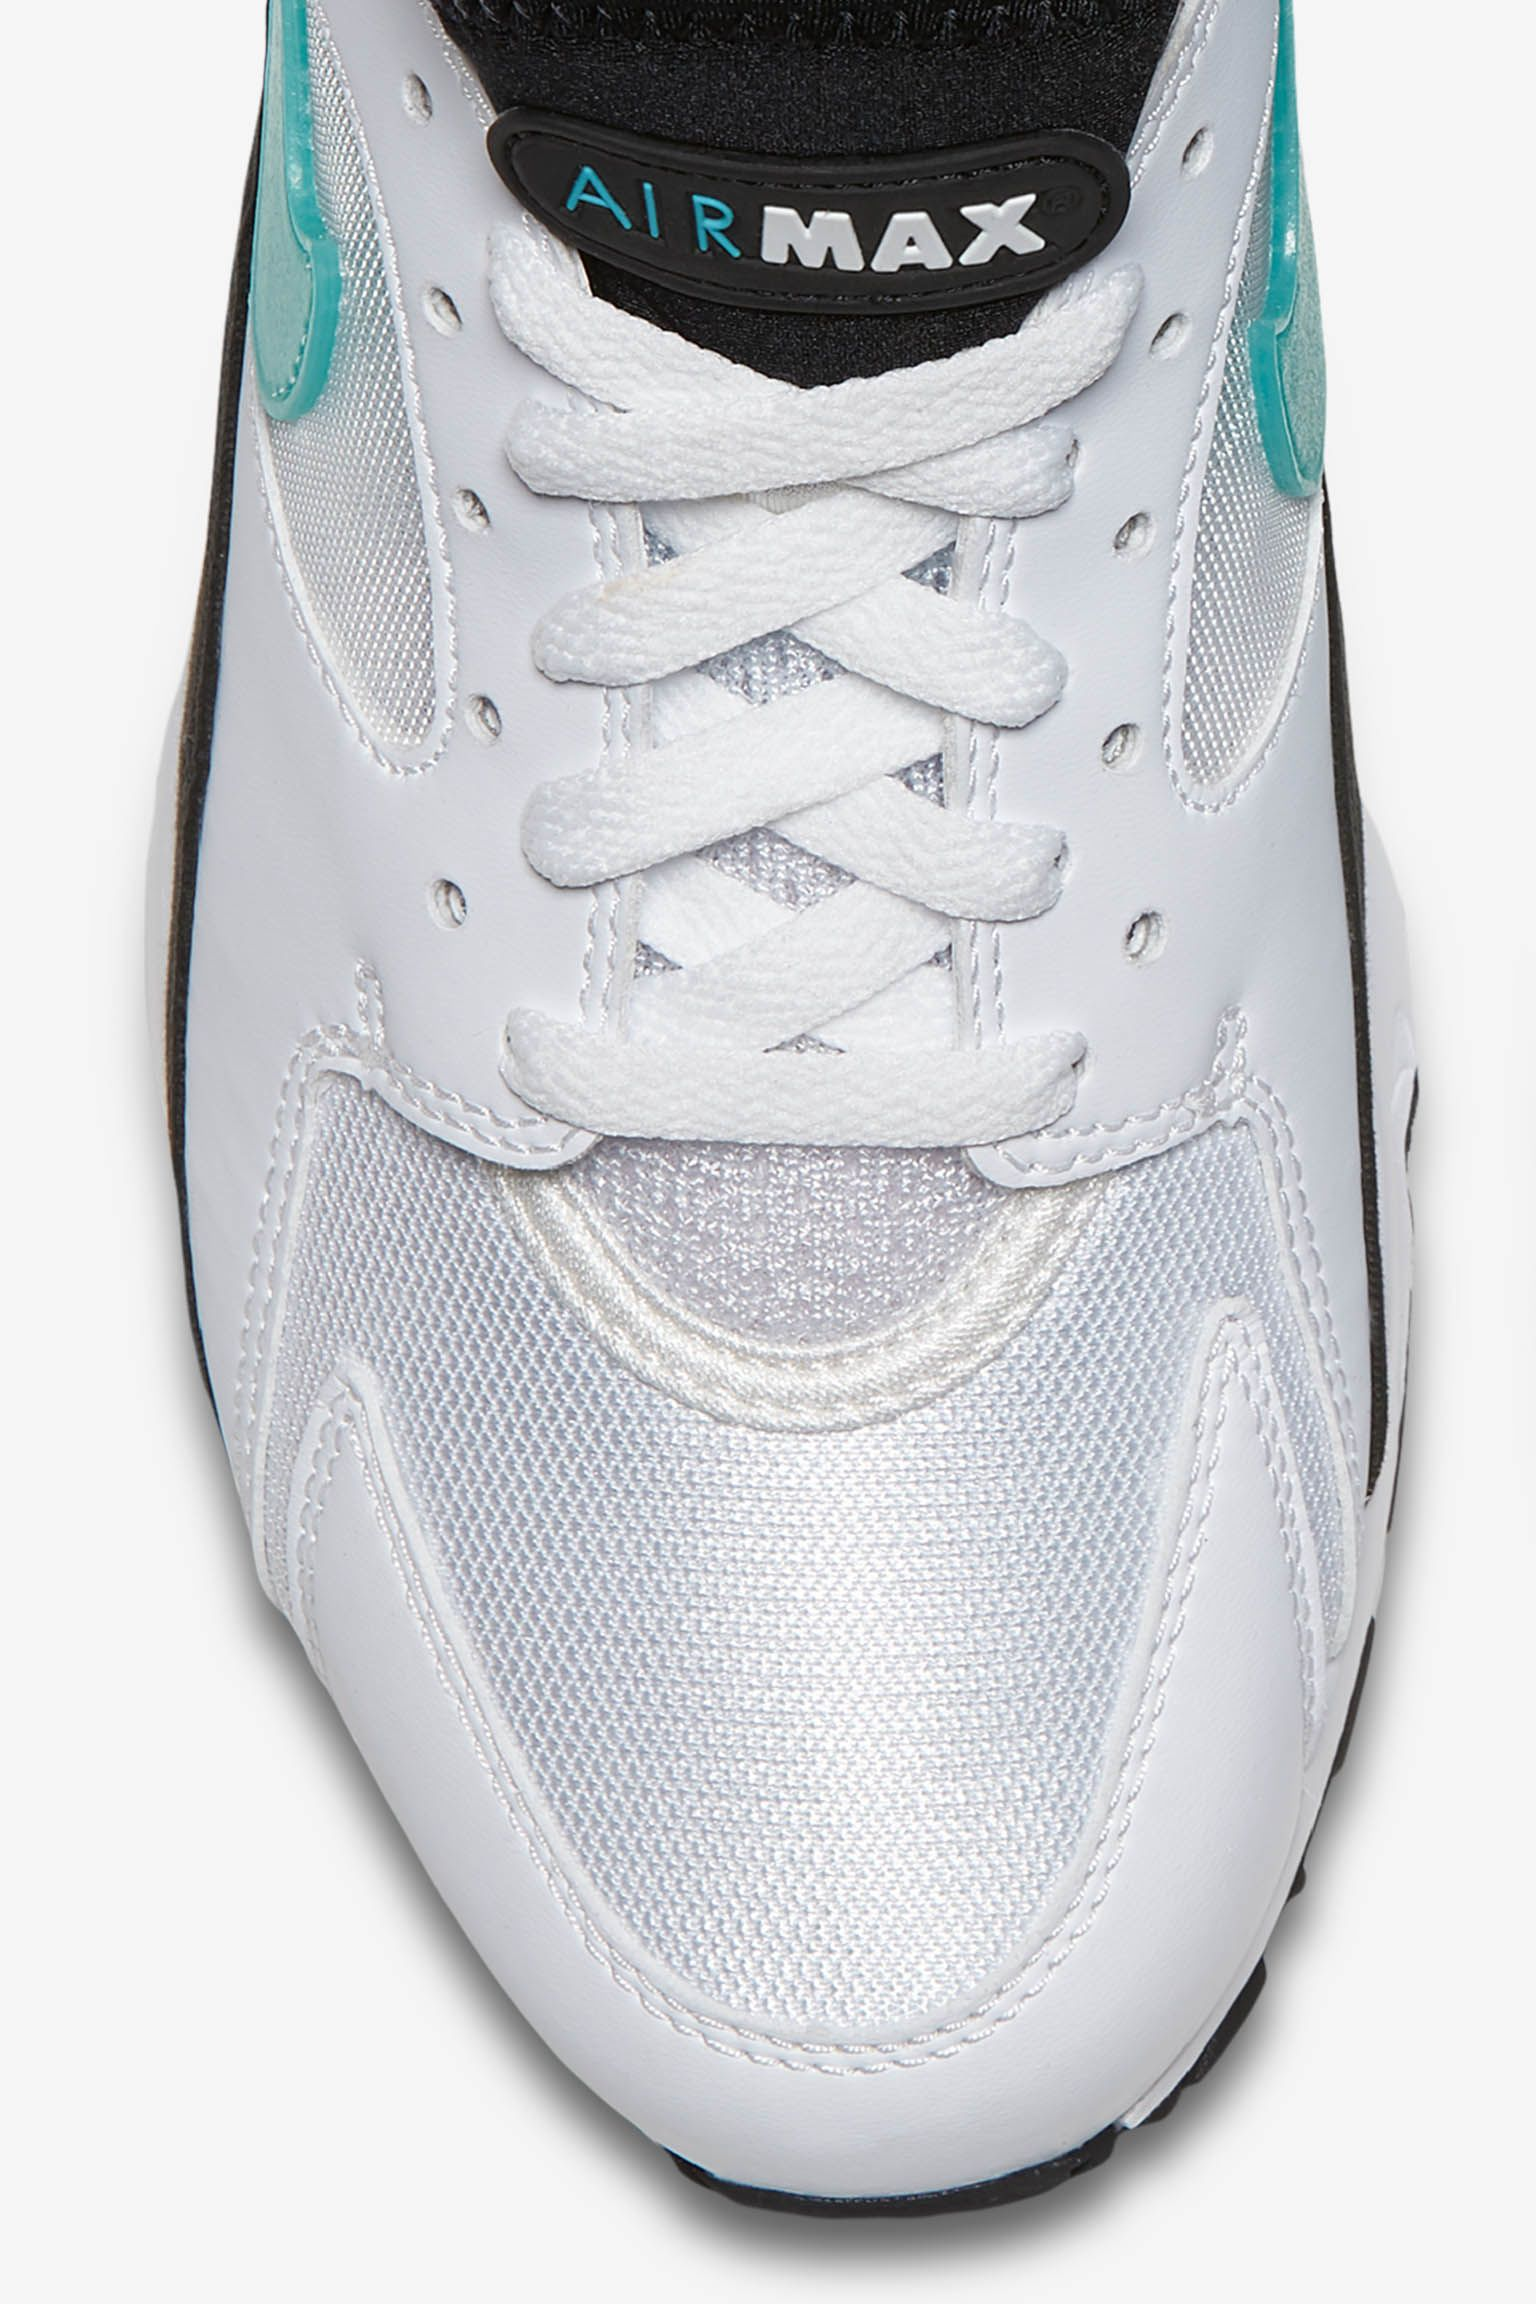 nike air max turquoise femme